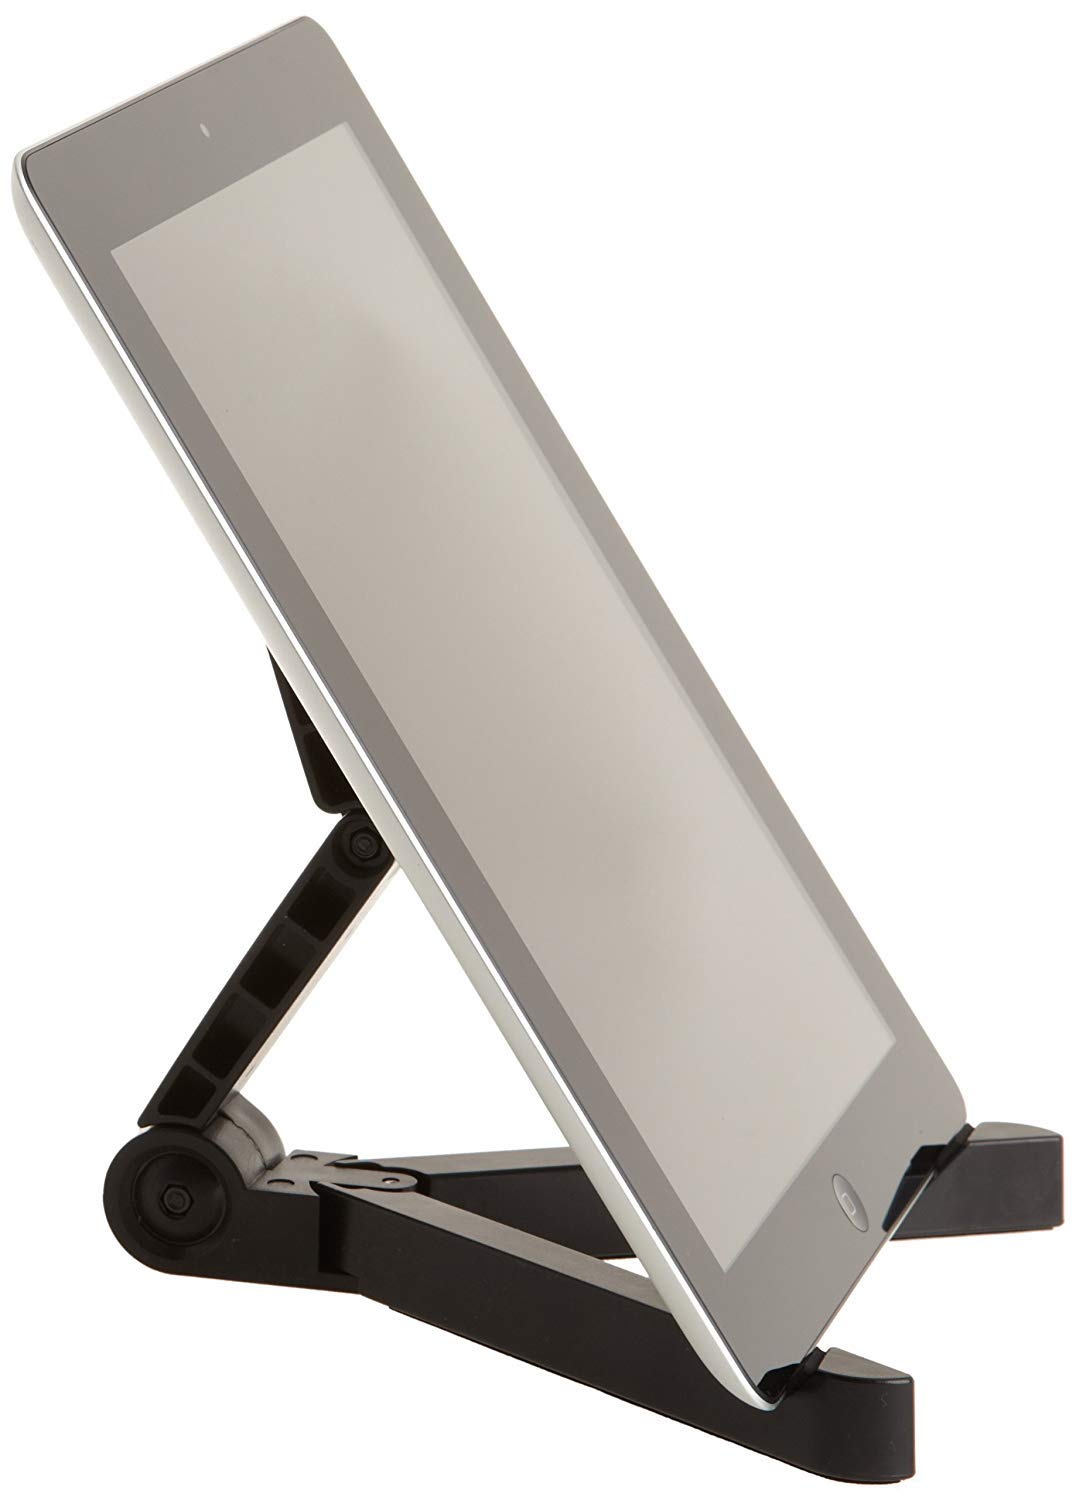 Amazon Basics Adjustable Tablet Holder Stand - Compatible with Apple iPad, Samsung Galaxy and Kindle Fire Tablets